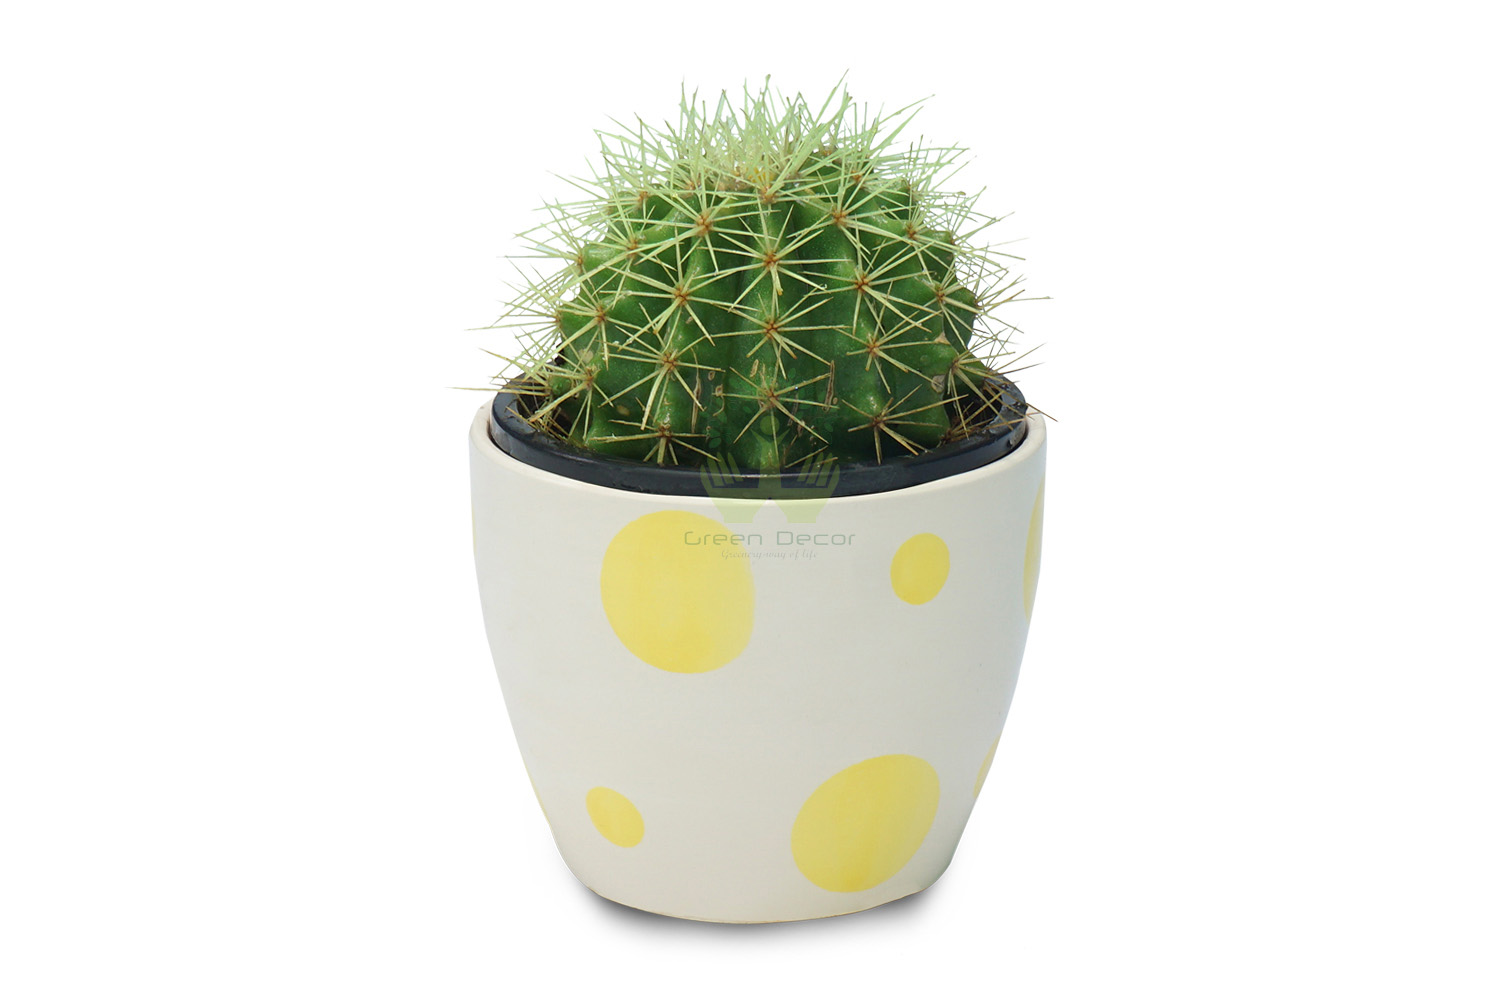 Buy Echinocactus Grusonii Plants , White Pots and seeds in Delhi NCR by the best online nursery shop Greendecor.